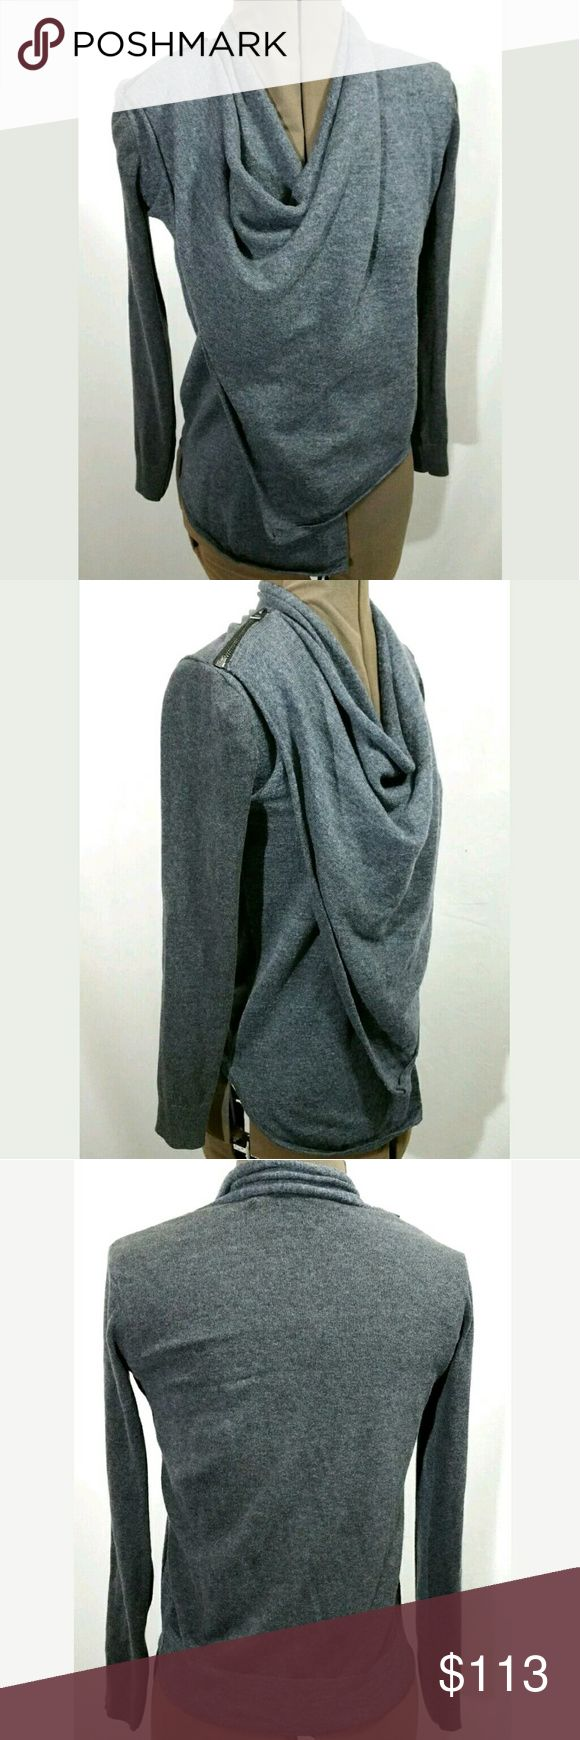 AllSaints Drina Asymmetric Cardigan Gray US sz 0 Best-selling drape cardigan from AllSaints. 2 tone gray with zip shoulder closure. Very modern and cool. Front is wool. Sleeves and the back are cotton. Great pre-owned condition All Saints Sweaters Cardigans